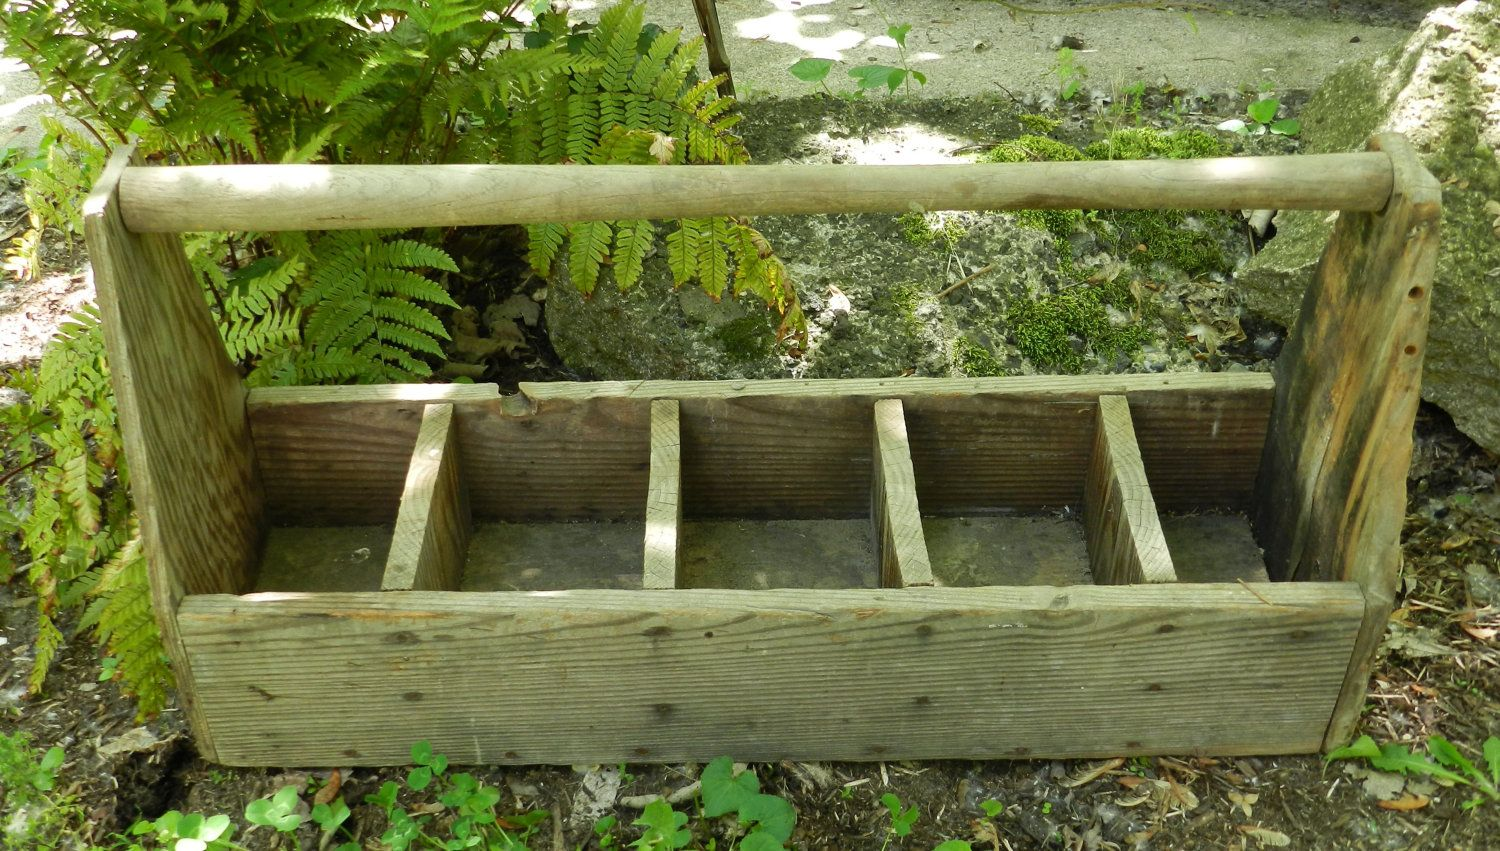 Large Vintage Wooden Compartment Tool Box Flower Box Planter